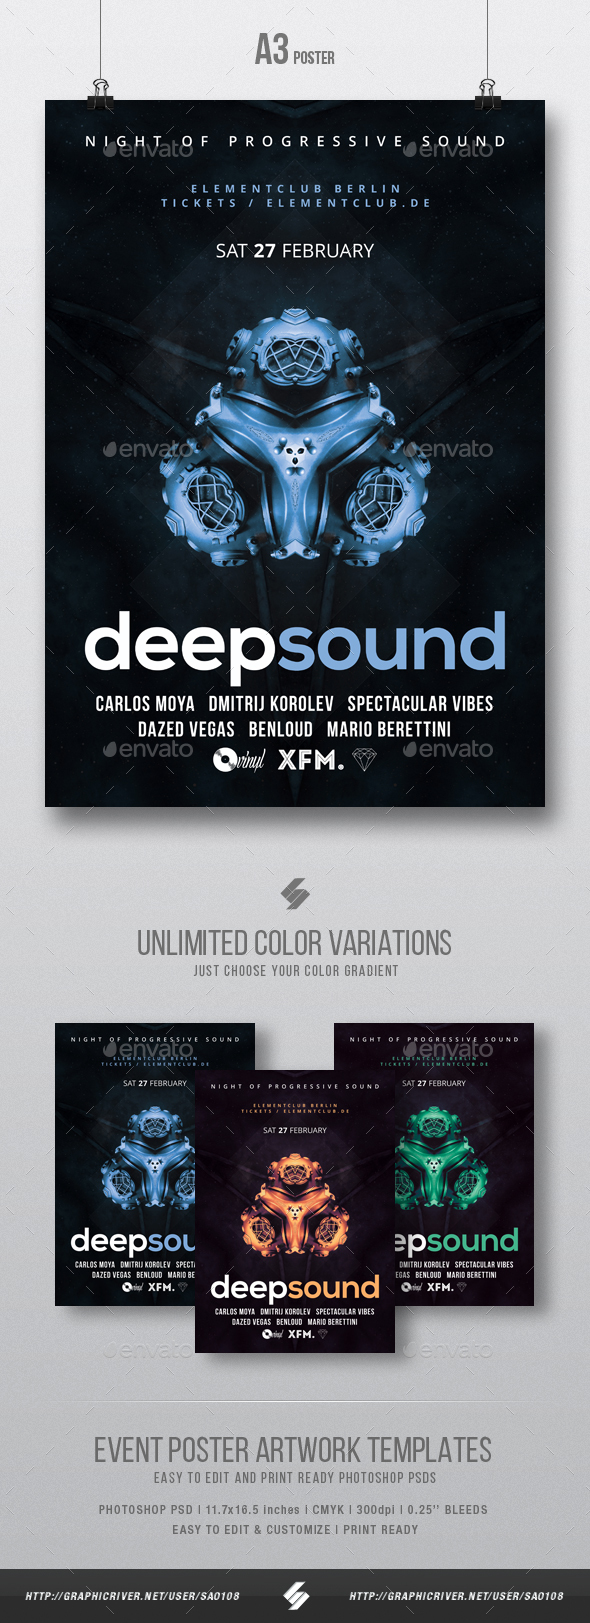 deep sound innovative occasion flyer poster template a3 download